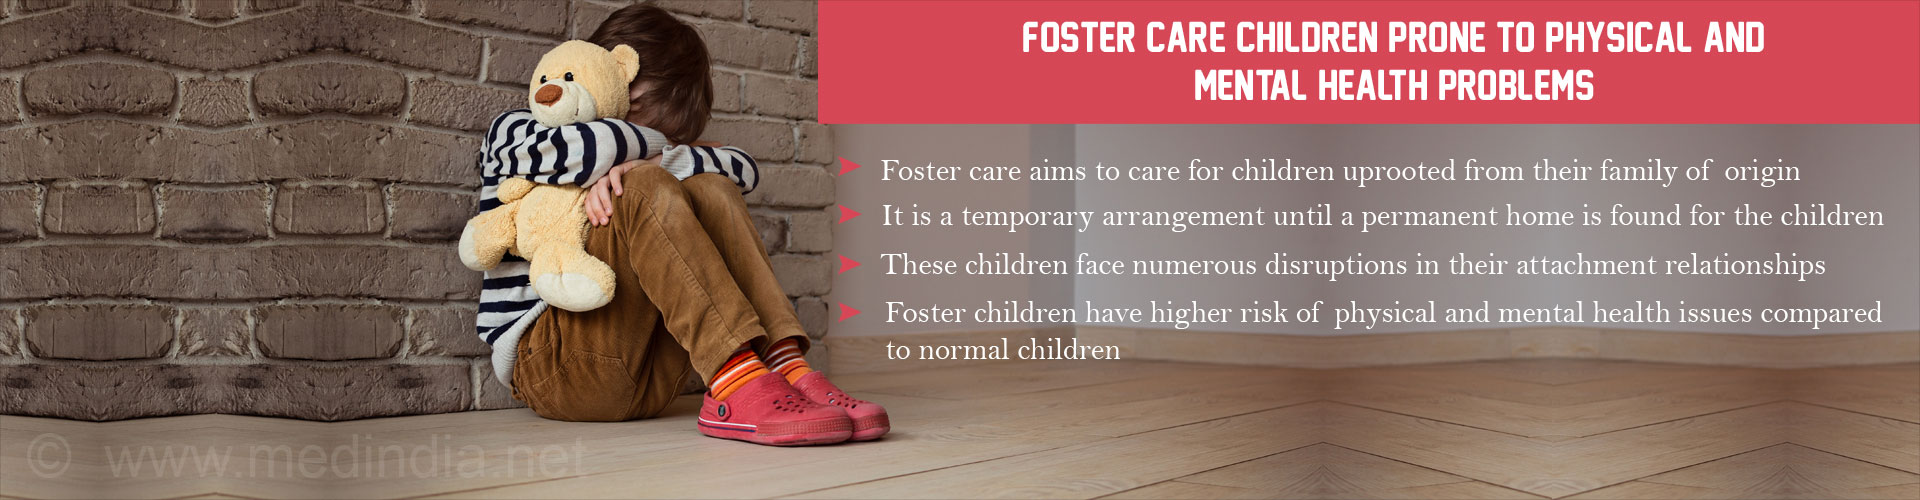 Children in Foster Care Have Higher Risk of Physical and Mental Health Issues